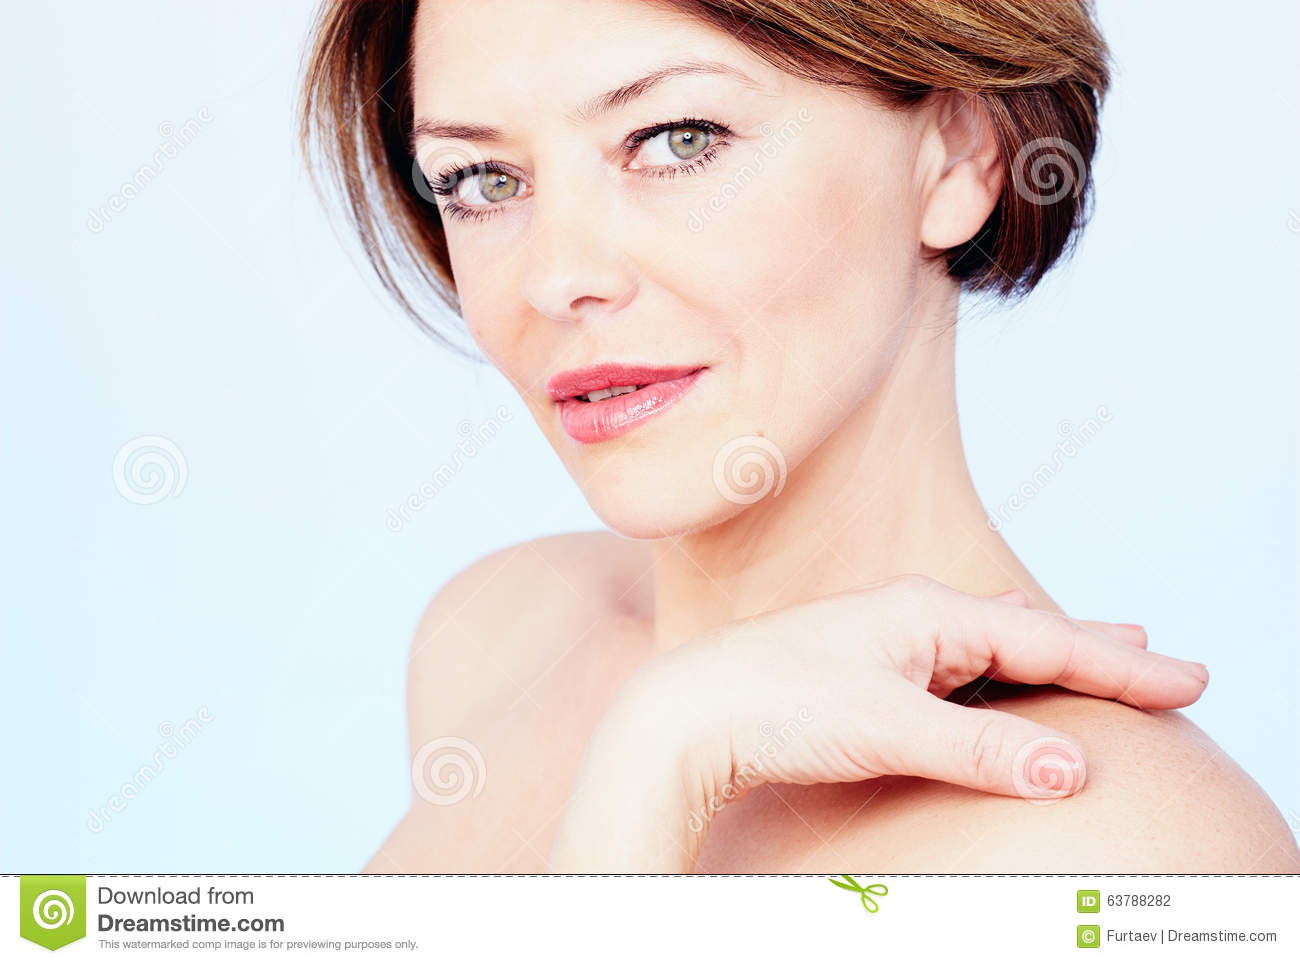 Mature Woman Portrait Stock Photo. Image Of Attractive - 63788282